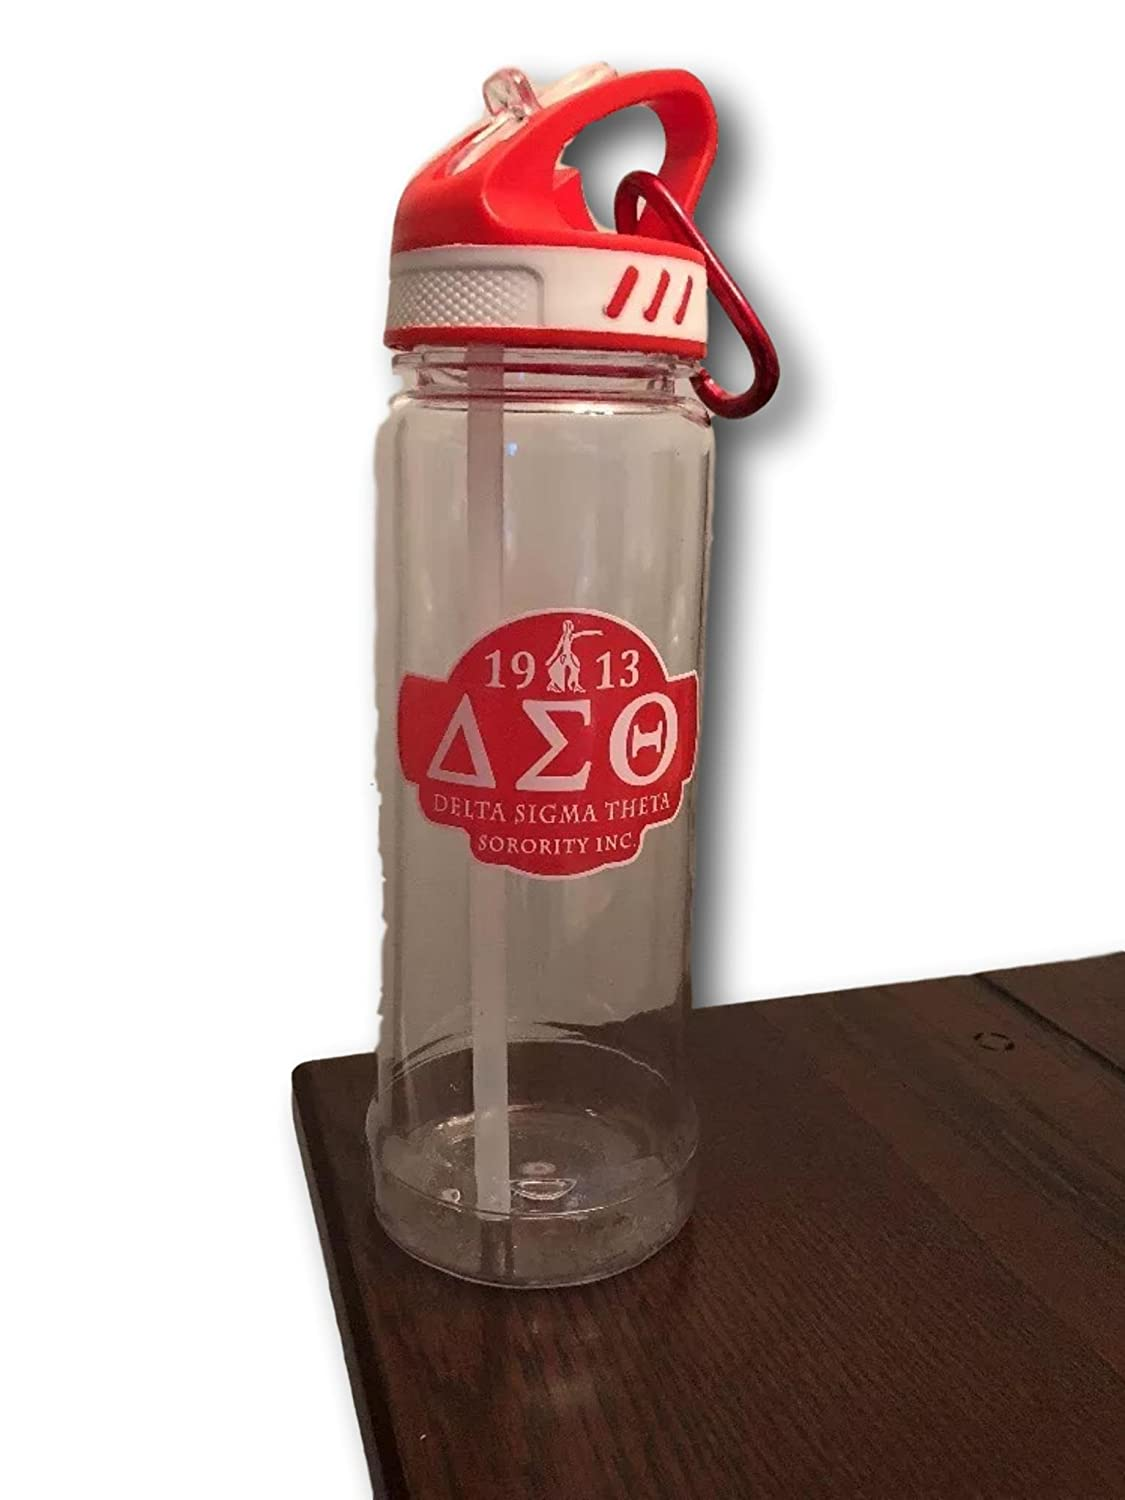 Amazon.com: Delta Sigma Theta - Botella de agua de 61 ml ...